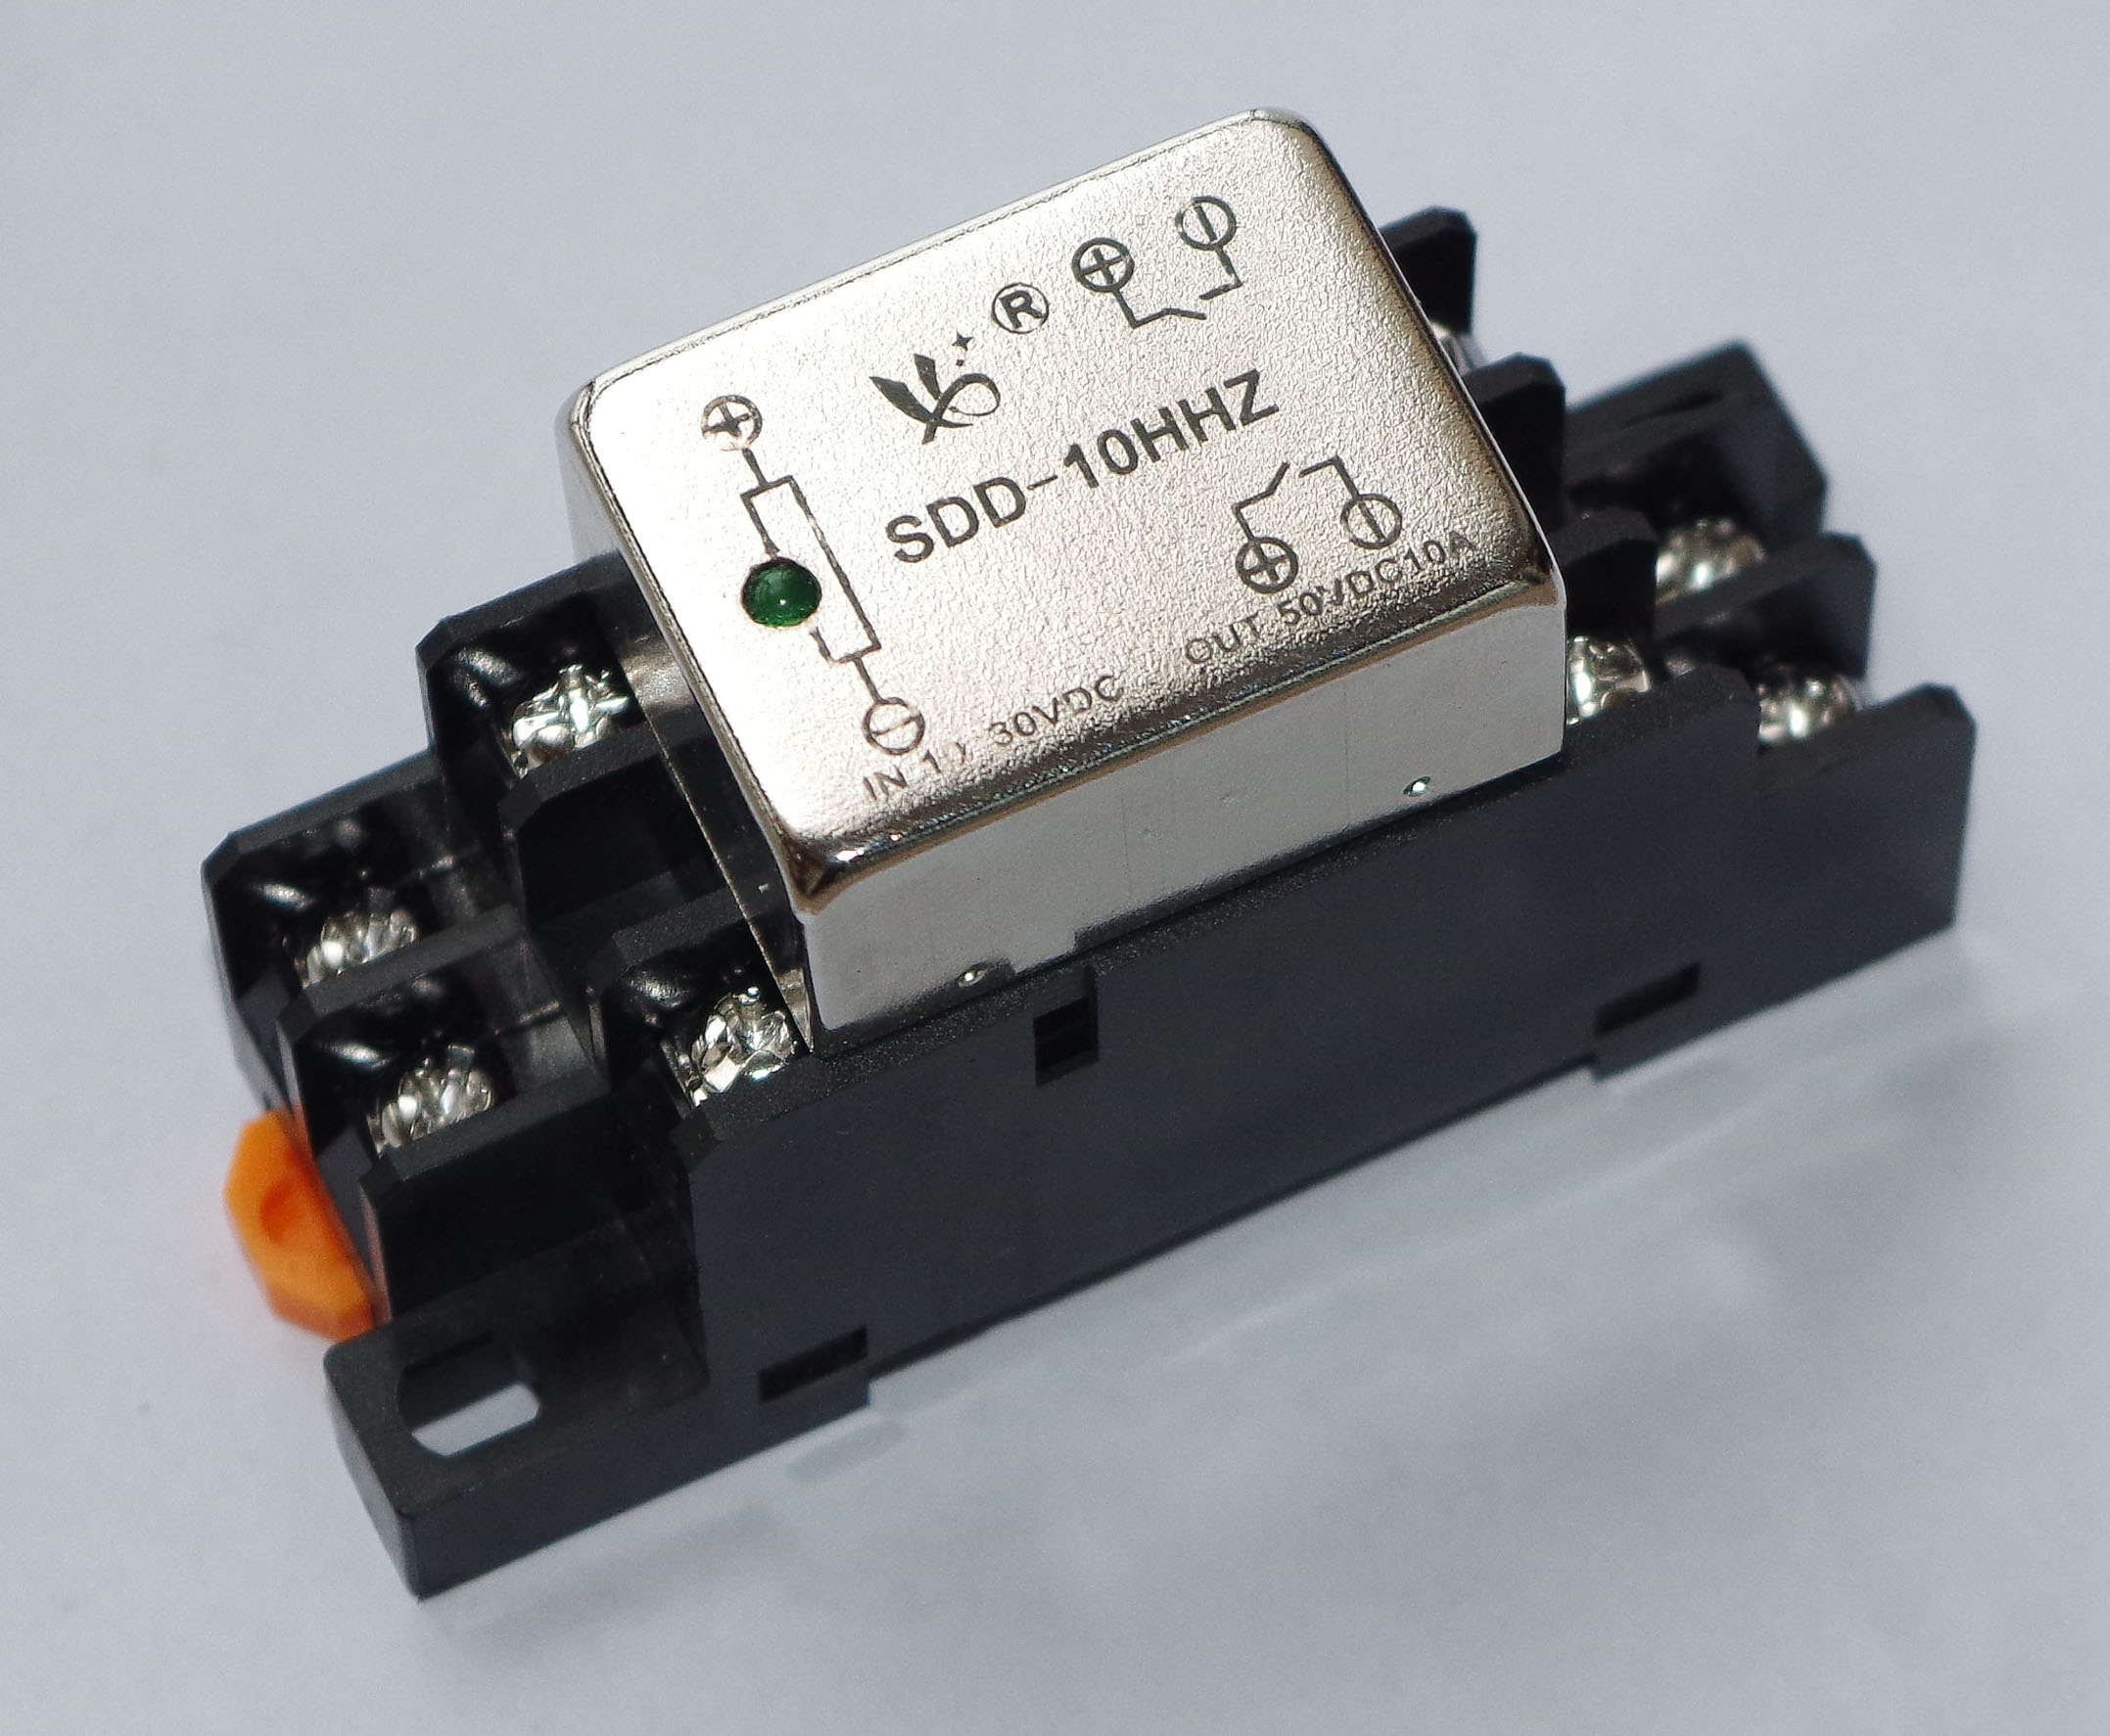 Mini 10A AC Solid State Relay Sockect Type With  Indicator  Sign Light SSR Switch SDD-10HHZ Rail InstallationMini 10A AC Solid State Relay Sockect Type With  Indicator  Sign Light SSR Switch SDD-10HHZ Rail Installation